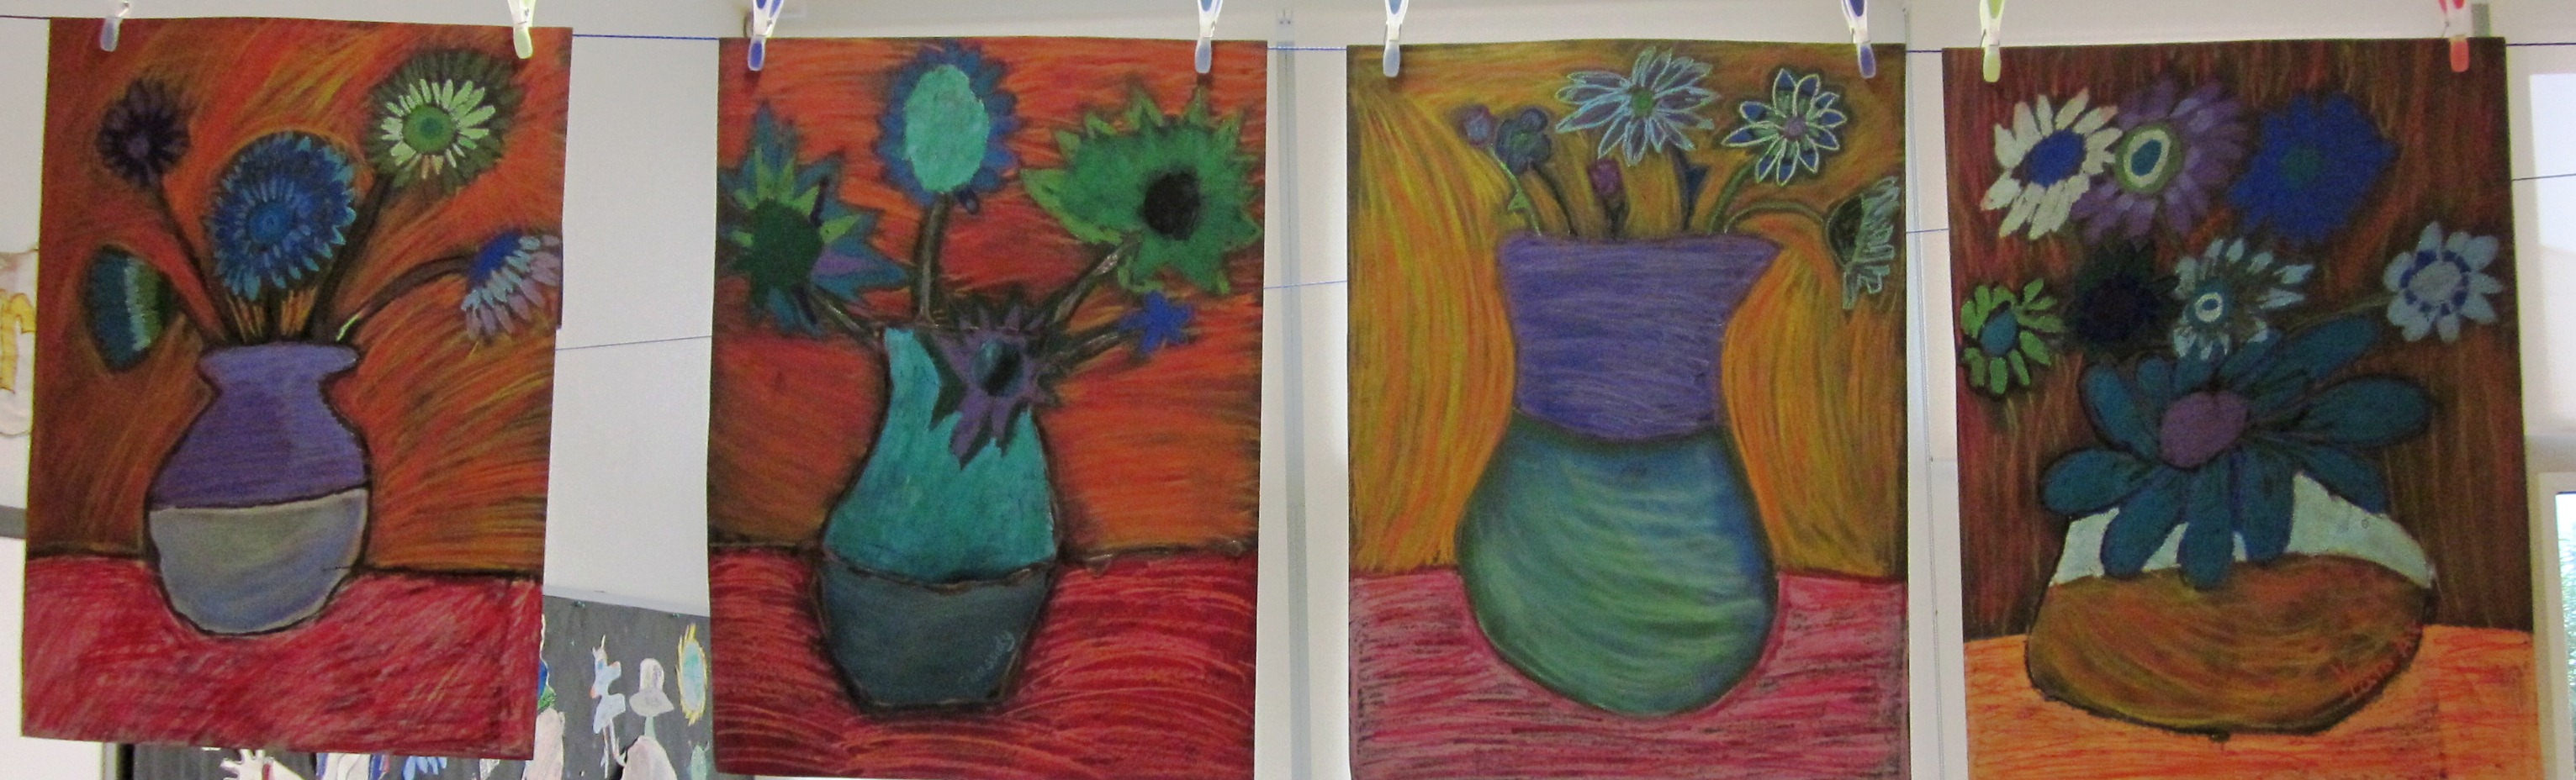 Art Projects Using Oil Pastels